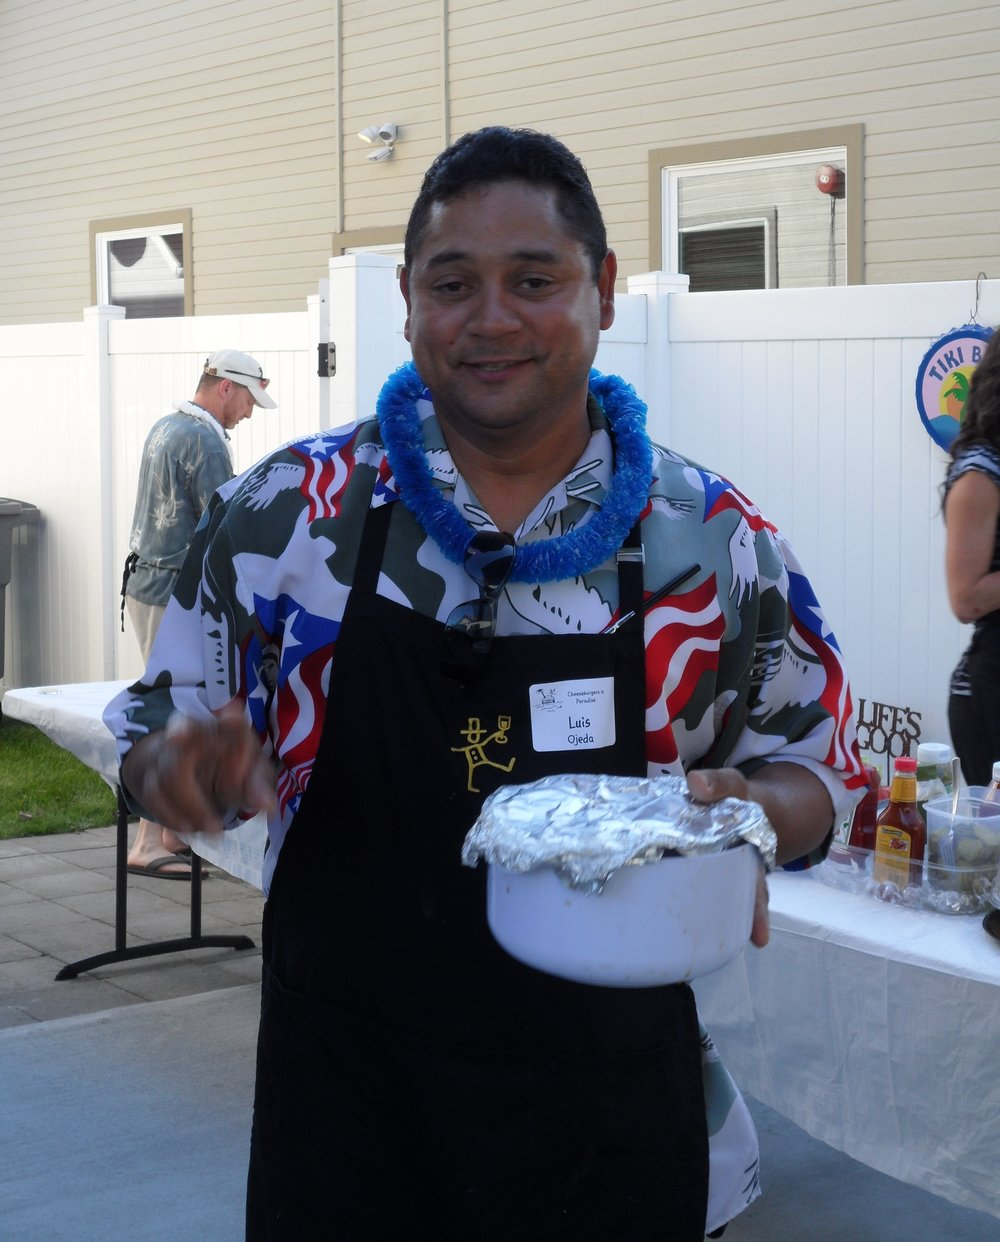 Here is Luis, our fav chef with his secret marinade sauce to make our cheeseburgers a gourmet experience.